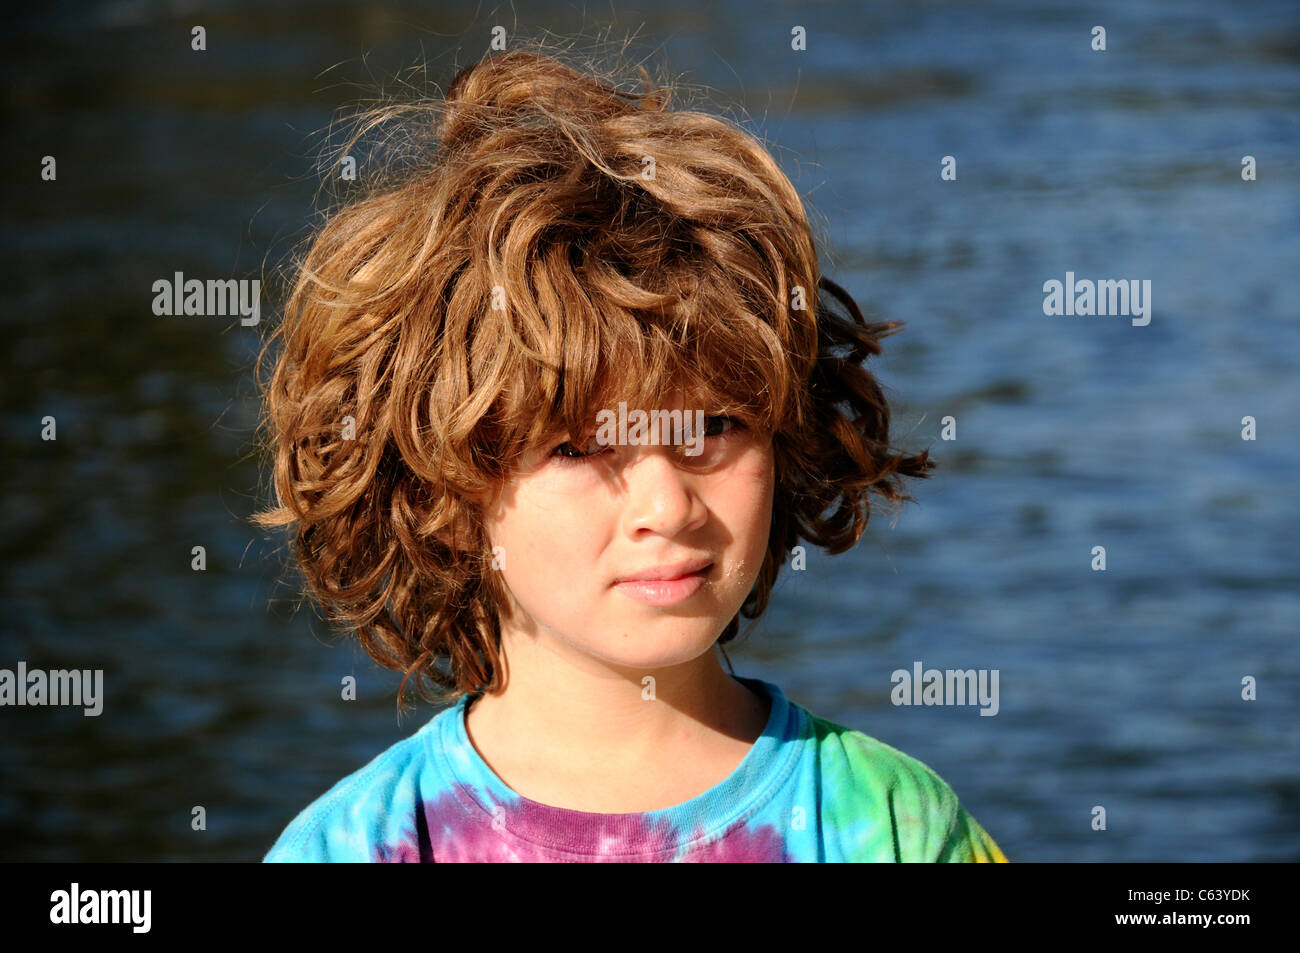 Young boy waking up on Salmon River rafting trip with wild scraggly auburn red hair - Stock Image